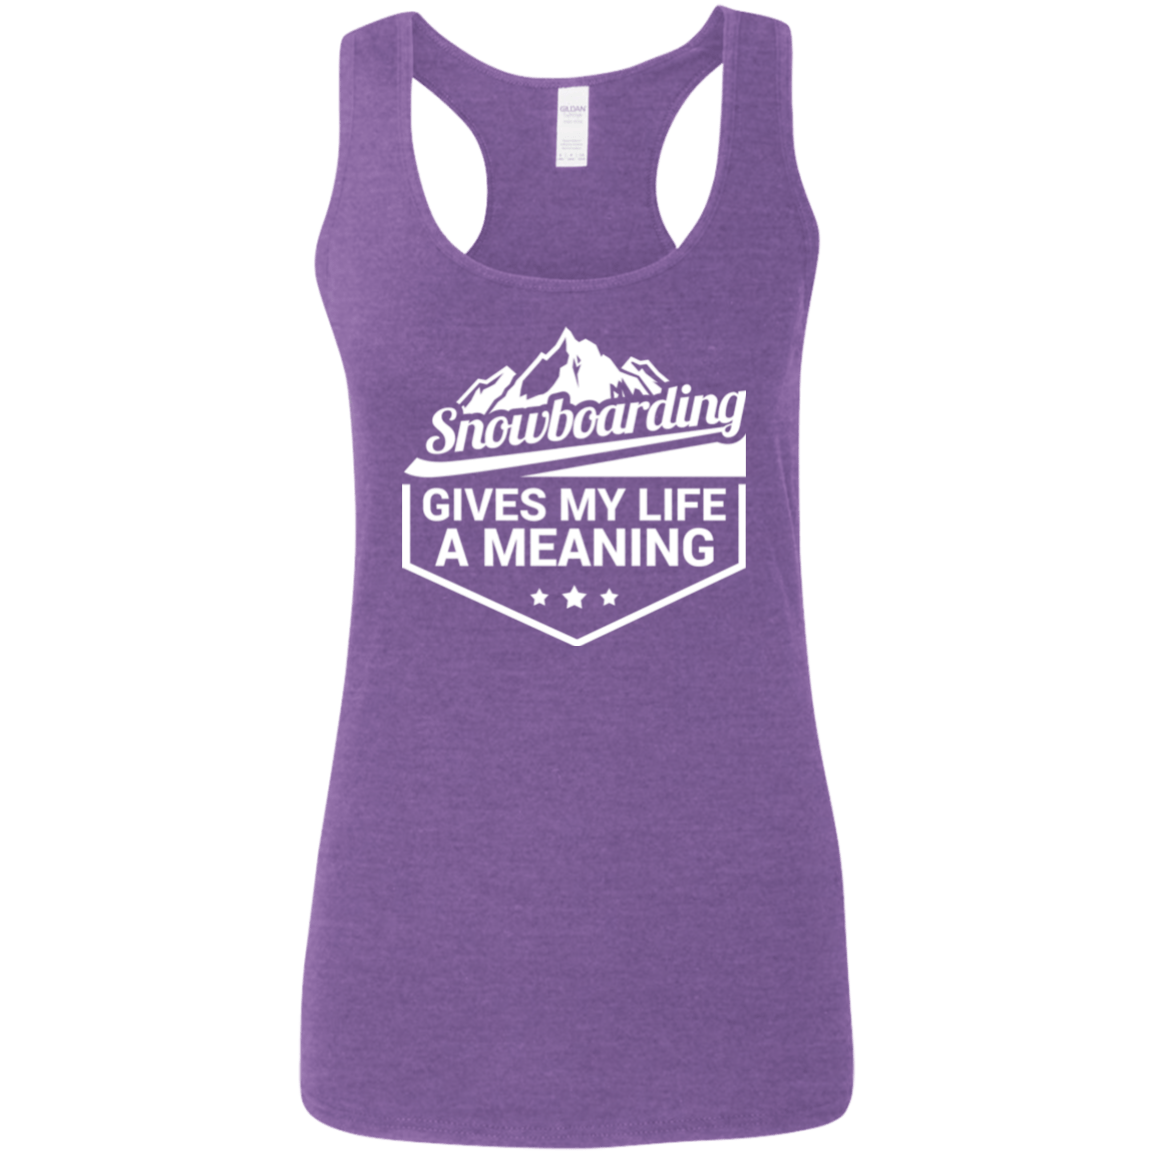 Snowboarding Gives My Life A Meaning Gildan Ladies' Softstyle Racerback Tank - Powderaddicts